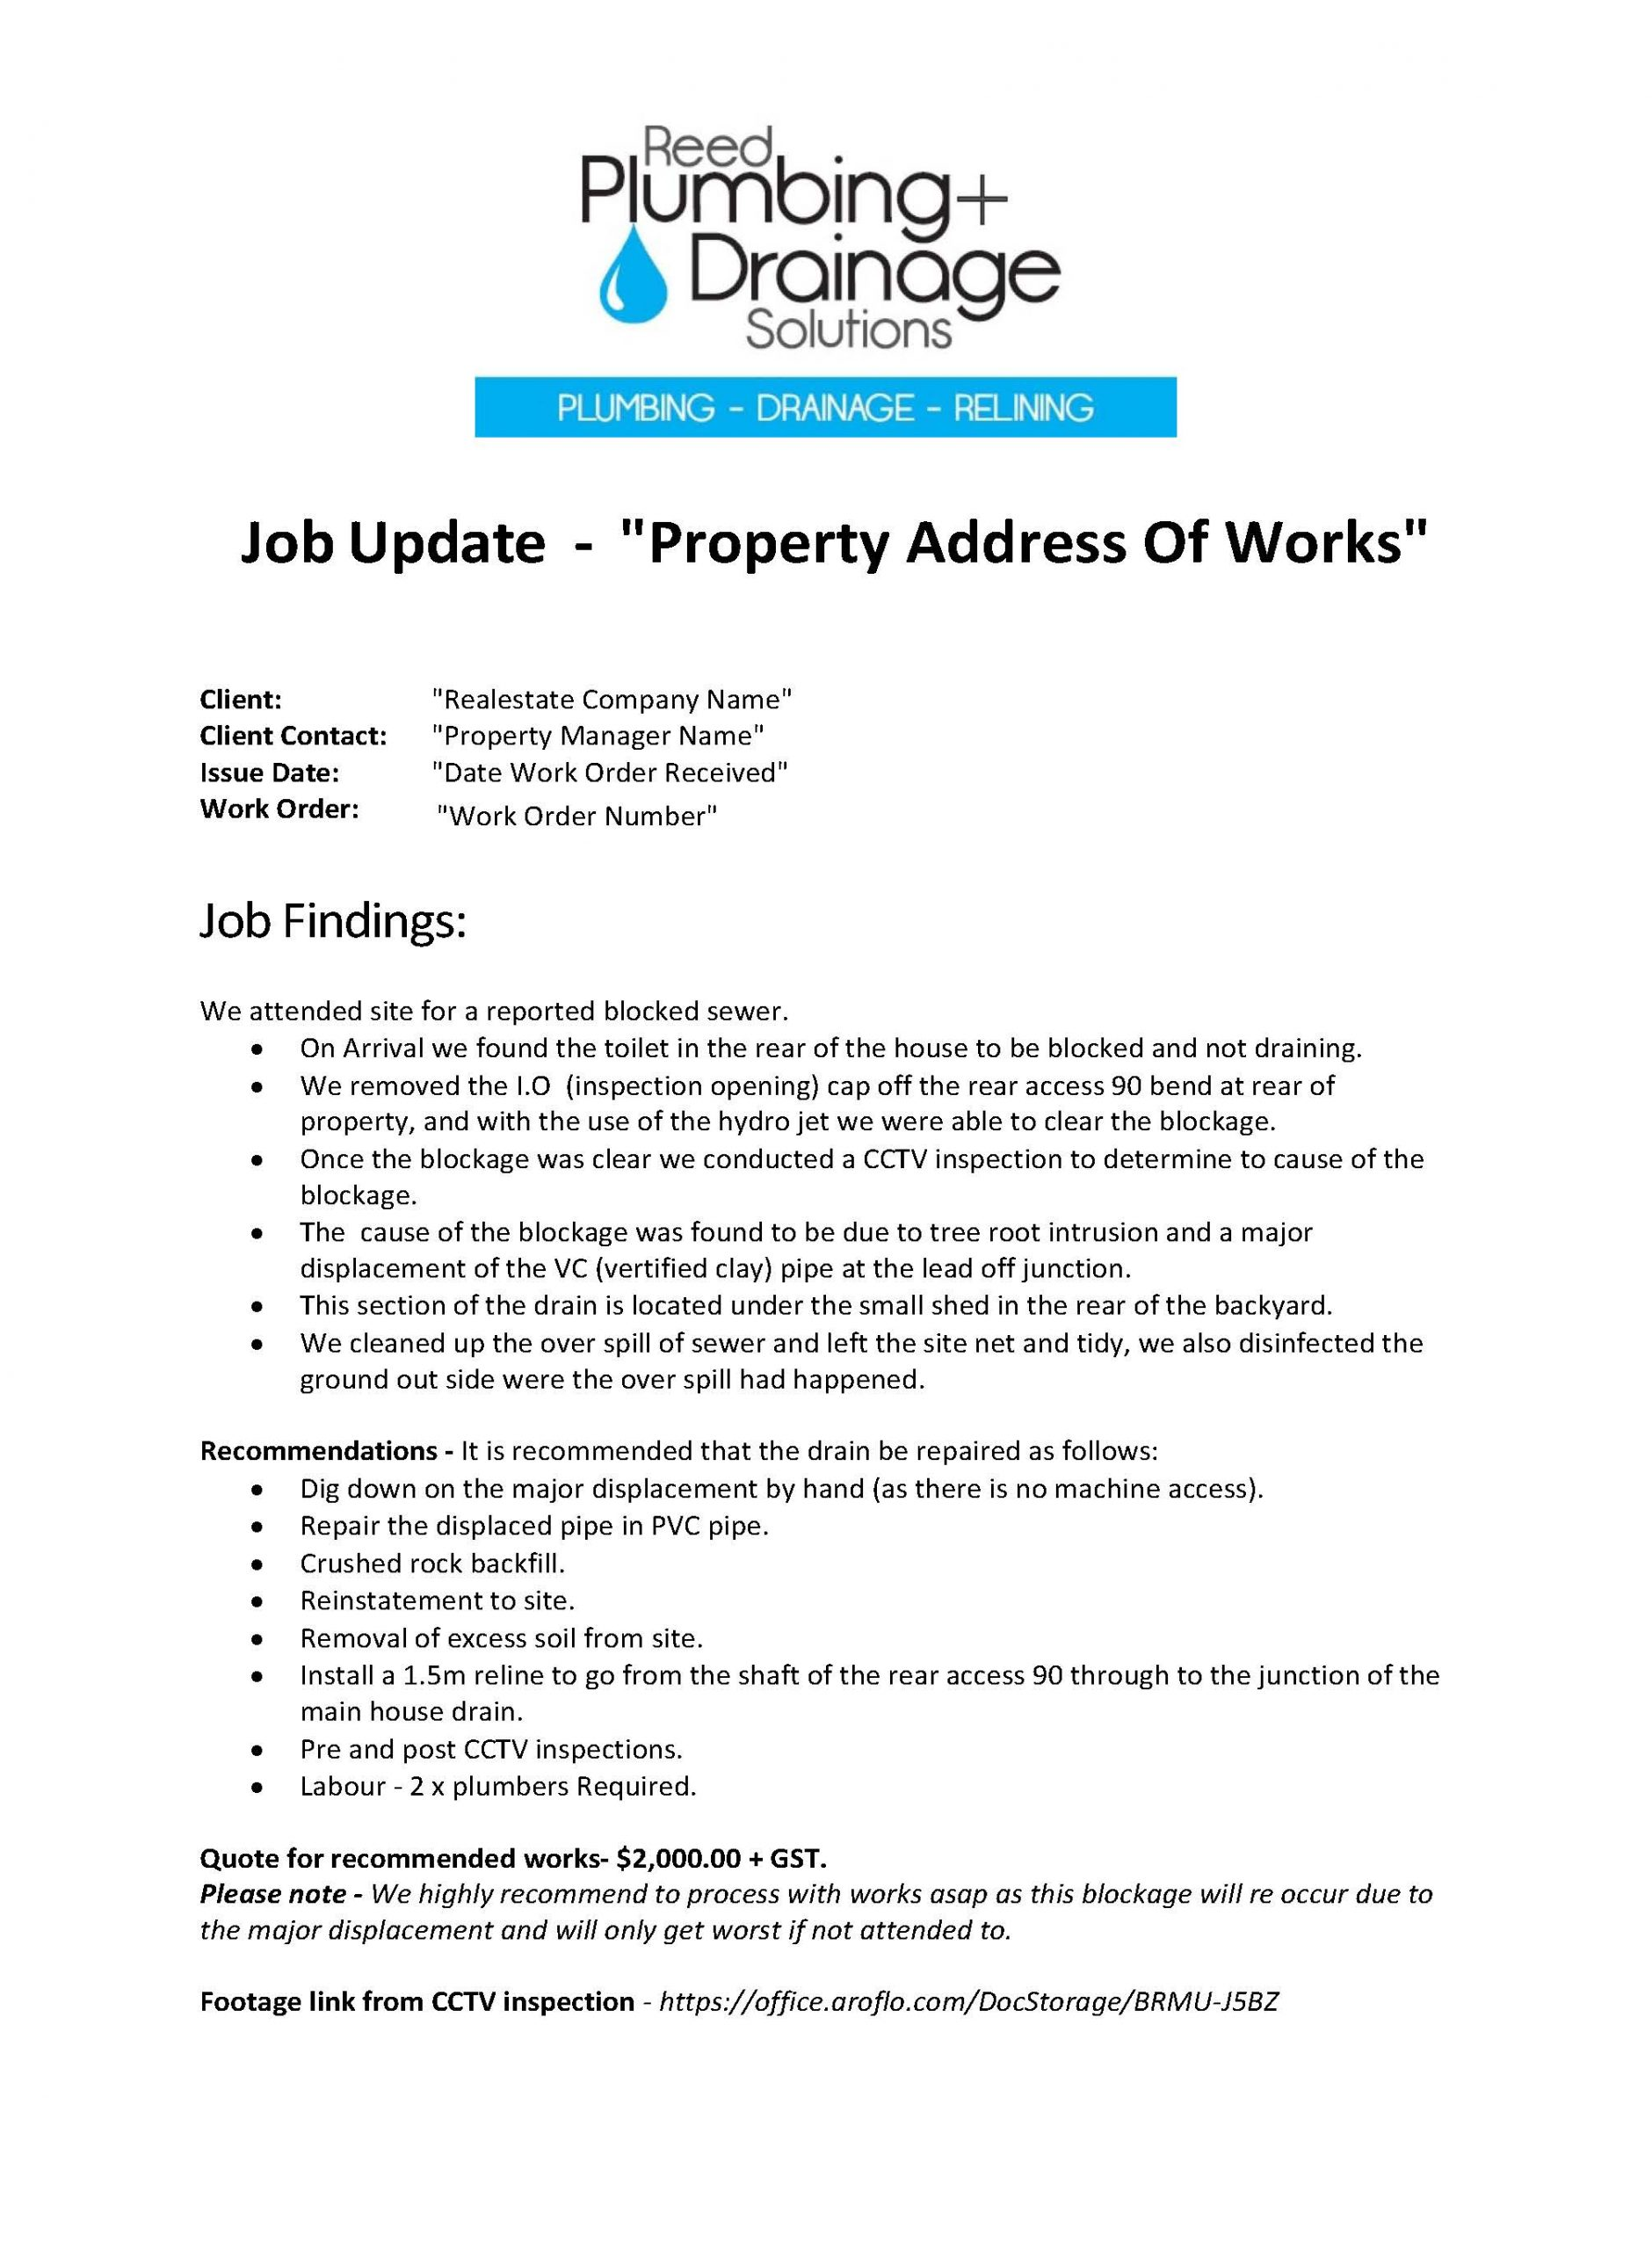 Blockage Report Example.pdf[14]_Page_1